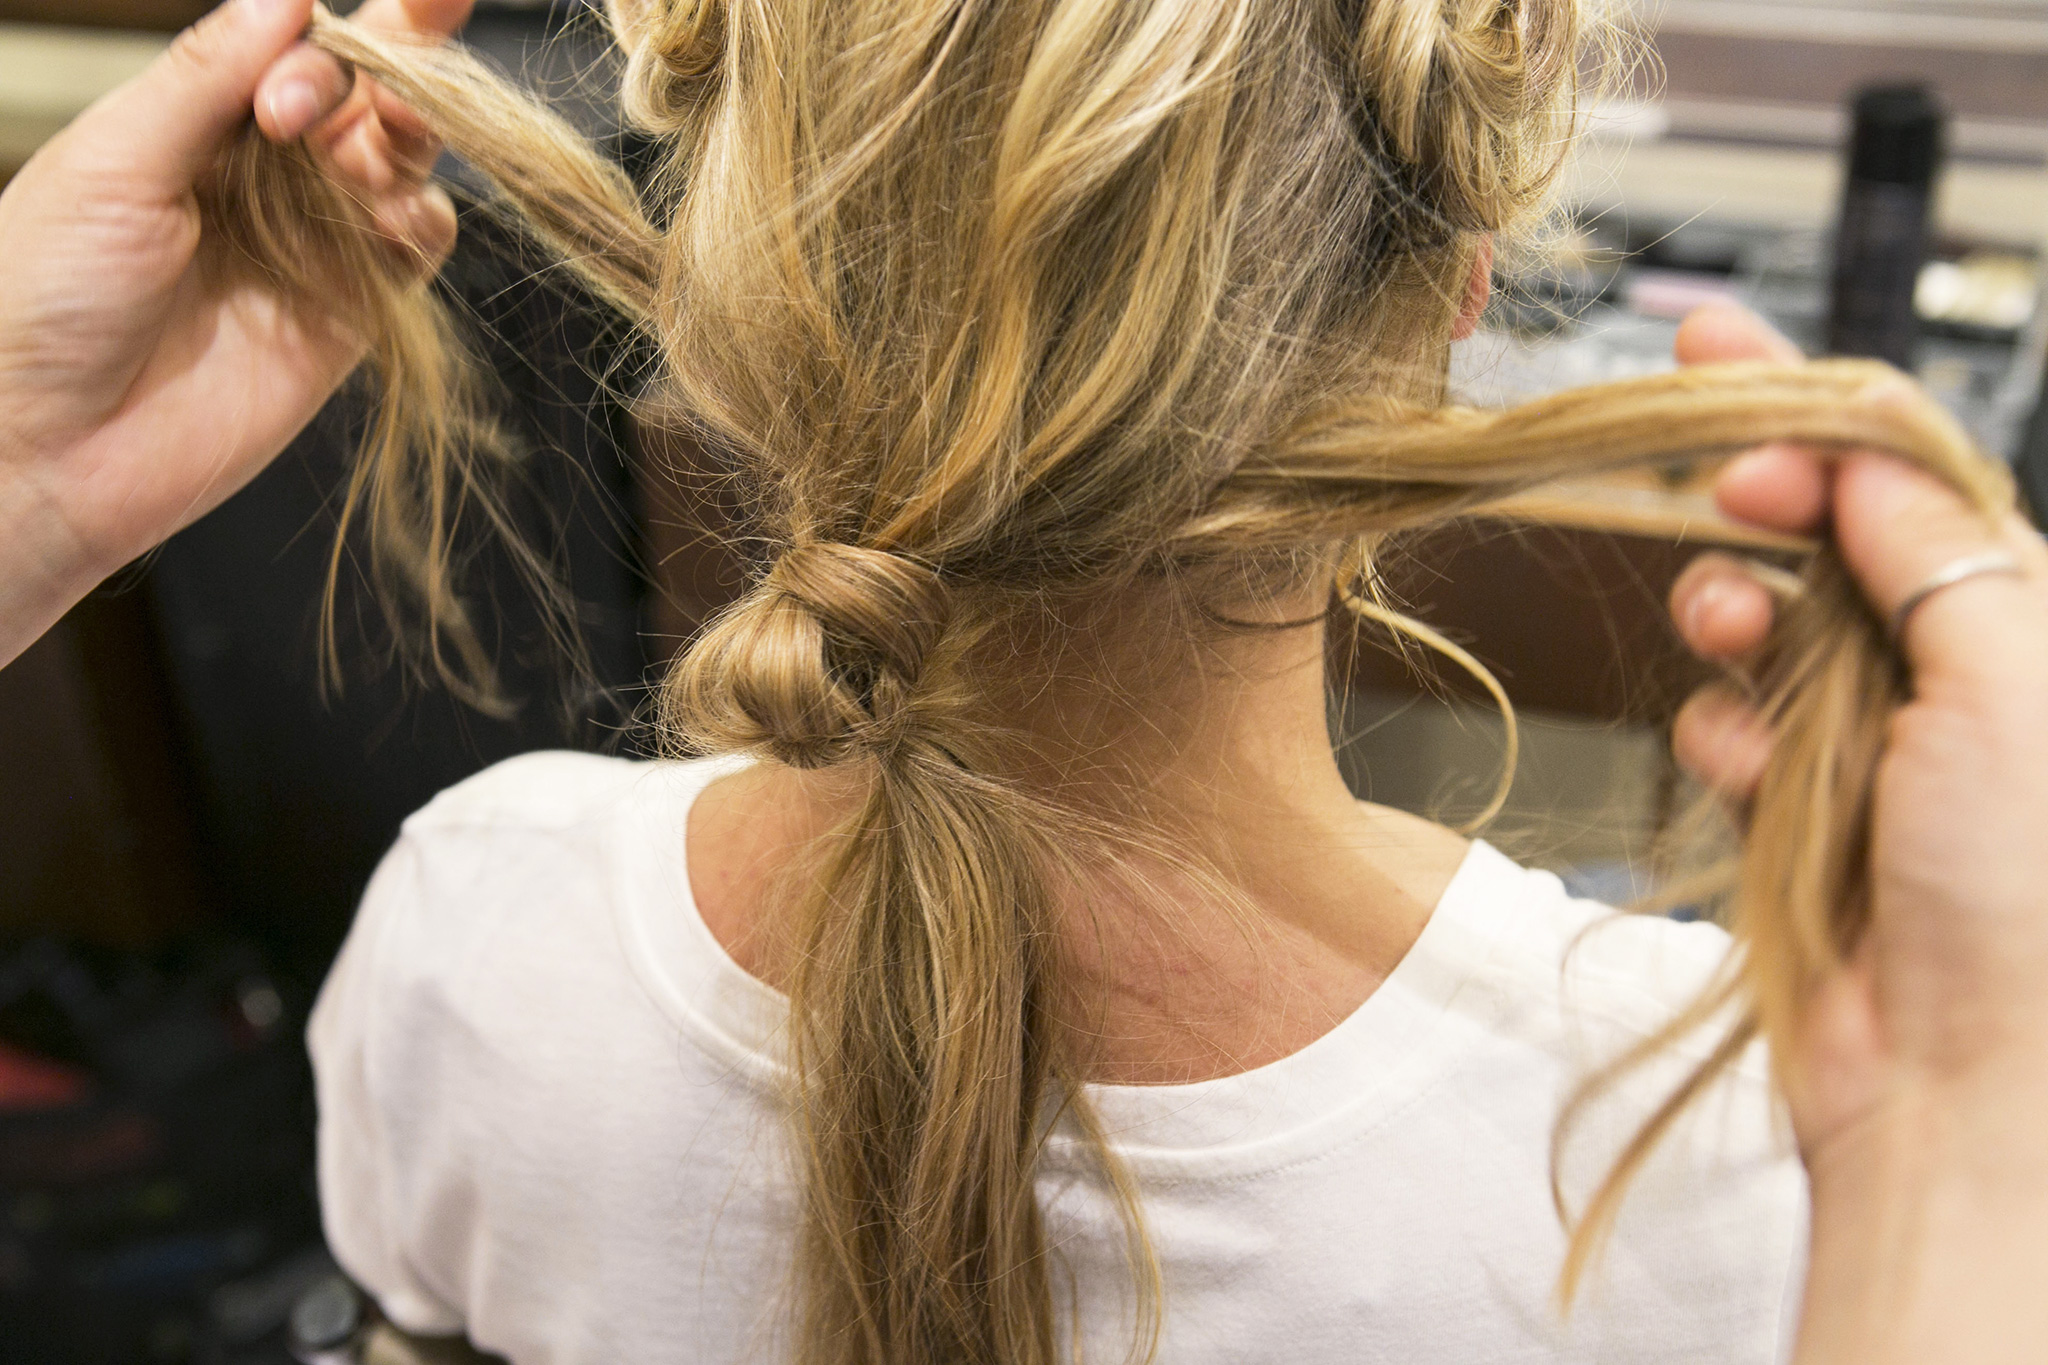 Now that you have the top of your look finished, it's time to revisit the loose ponytail and the hair along your neck. Split the loose hair underneath the ponytail into two even sections as shown here.